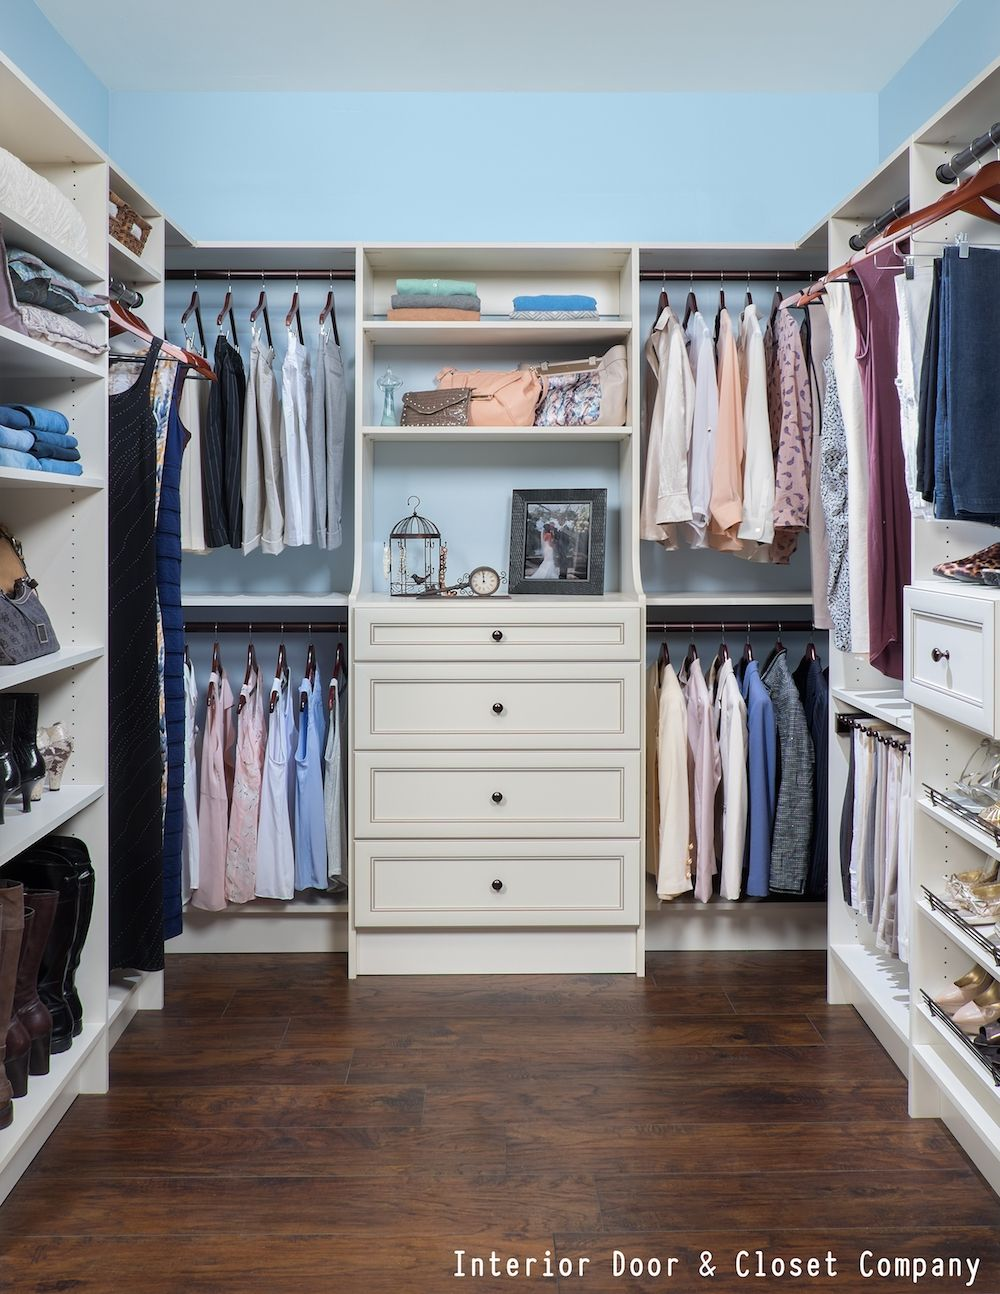 6 X 8 Closet Design Narrow Walk In Closets Ideas Pictures Walk In Closet  Jpg. Master Bedroom Closets Design Pretty Much Exactly What I Want 3.